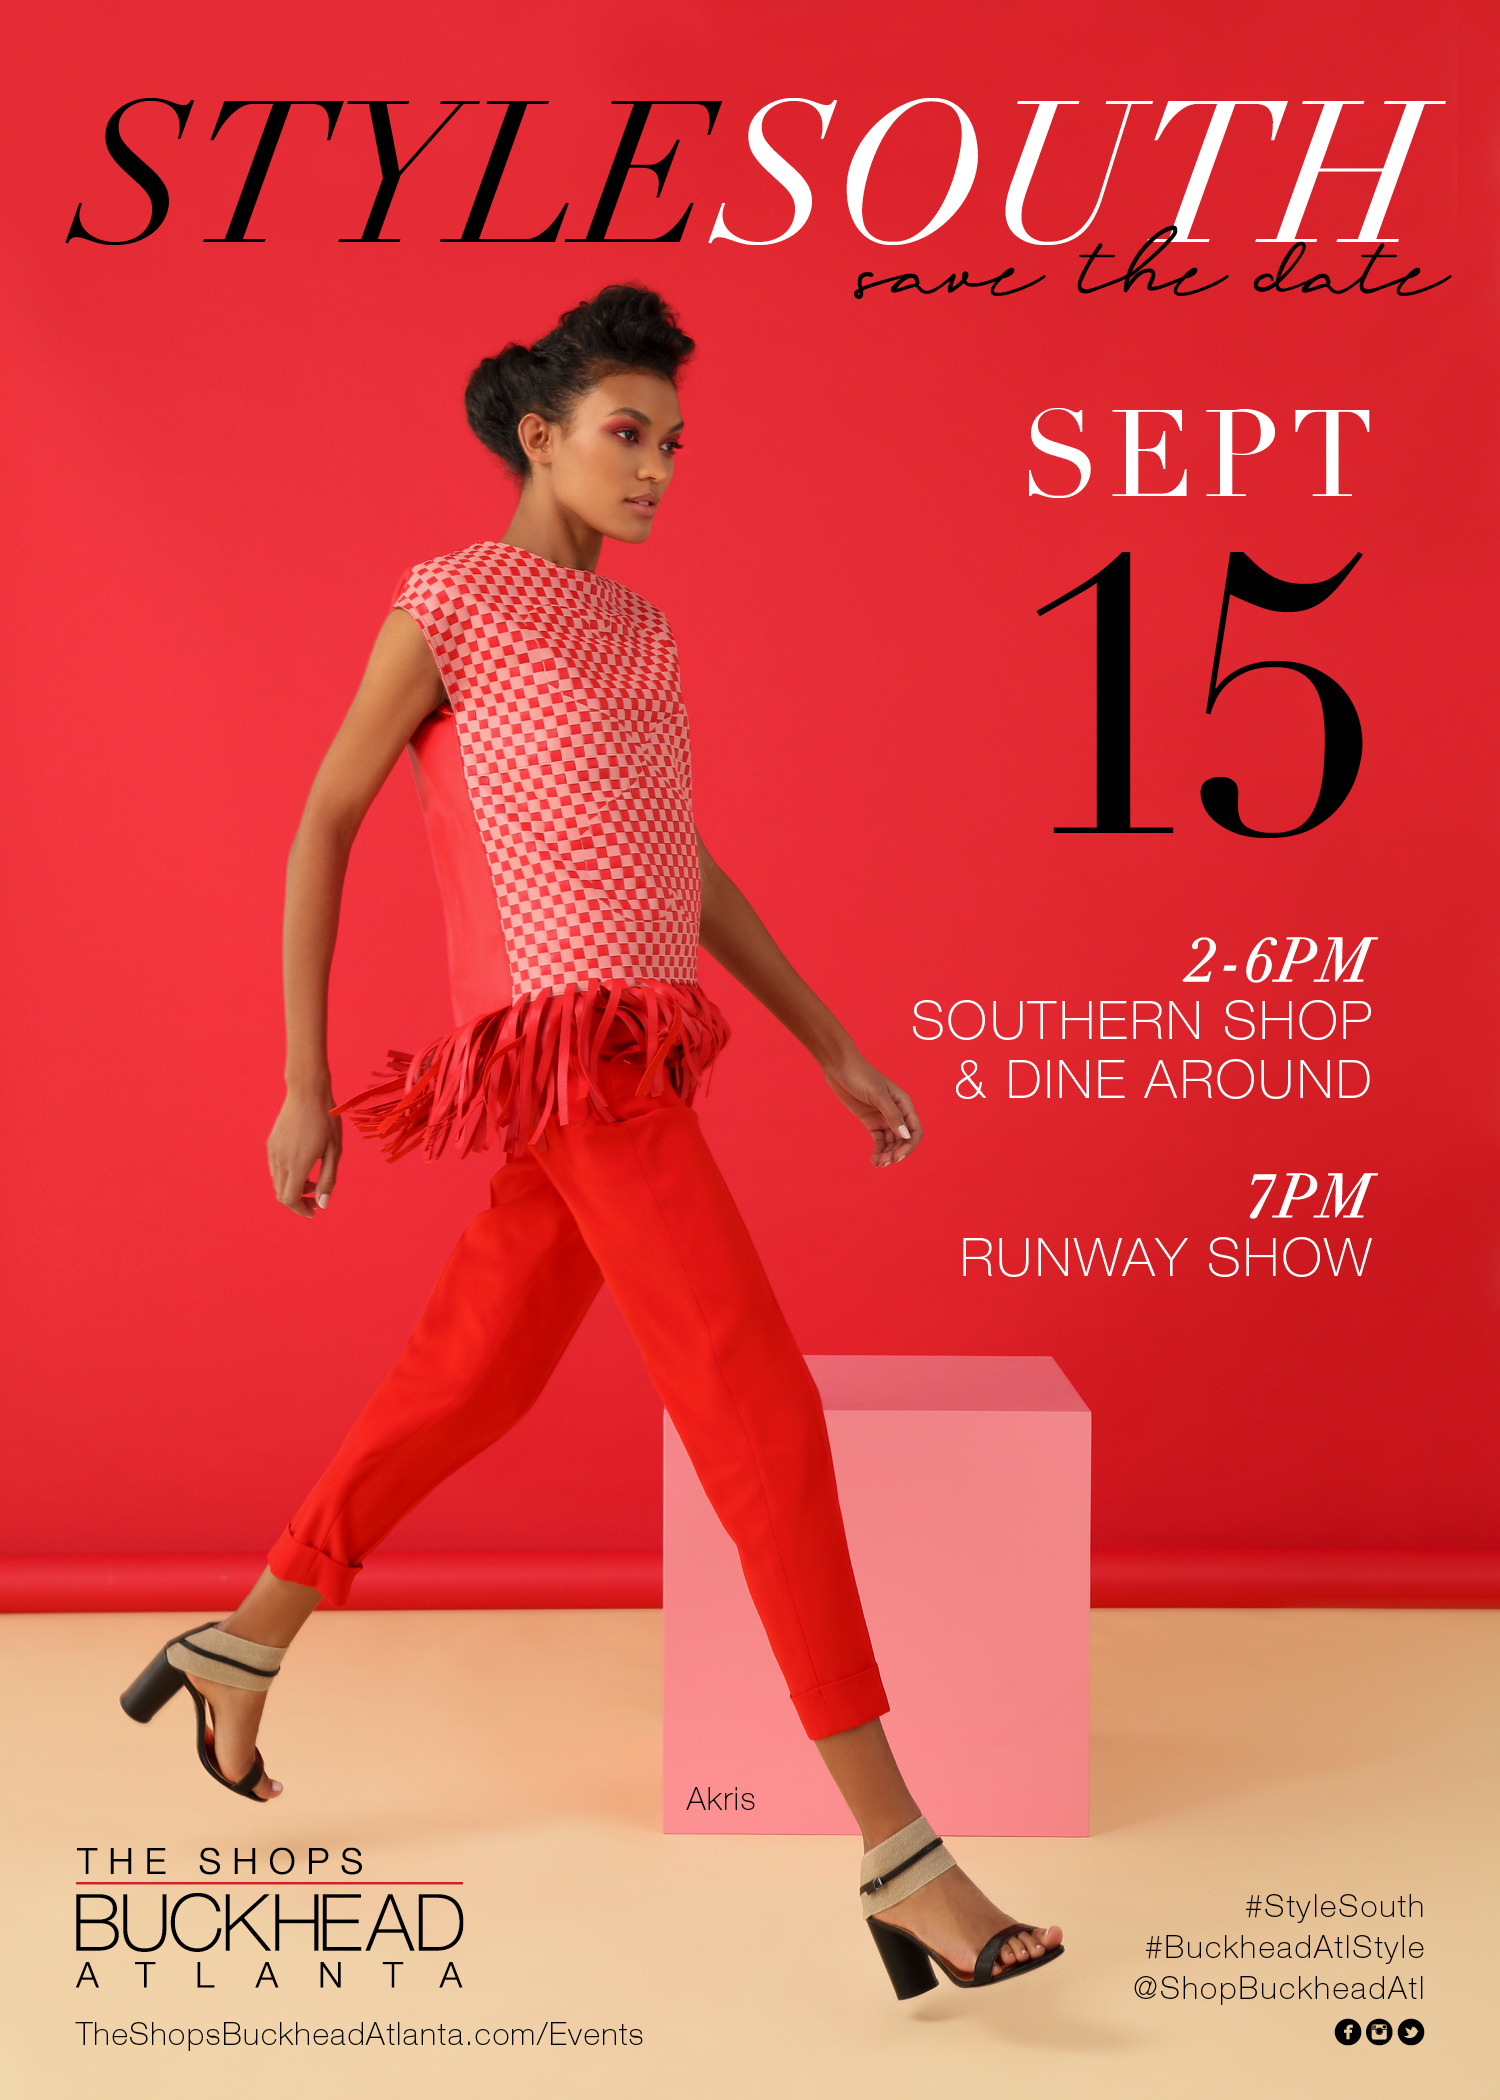 Style South_Save the Date_5x7.jpg